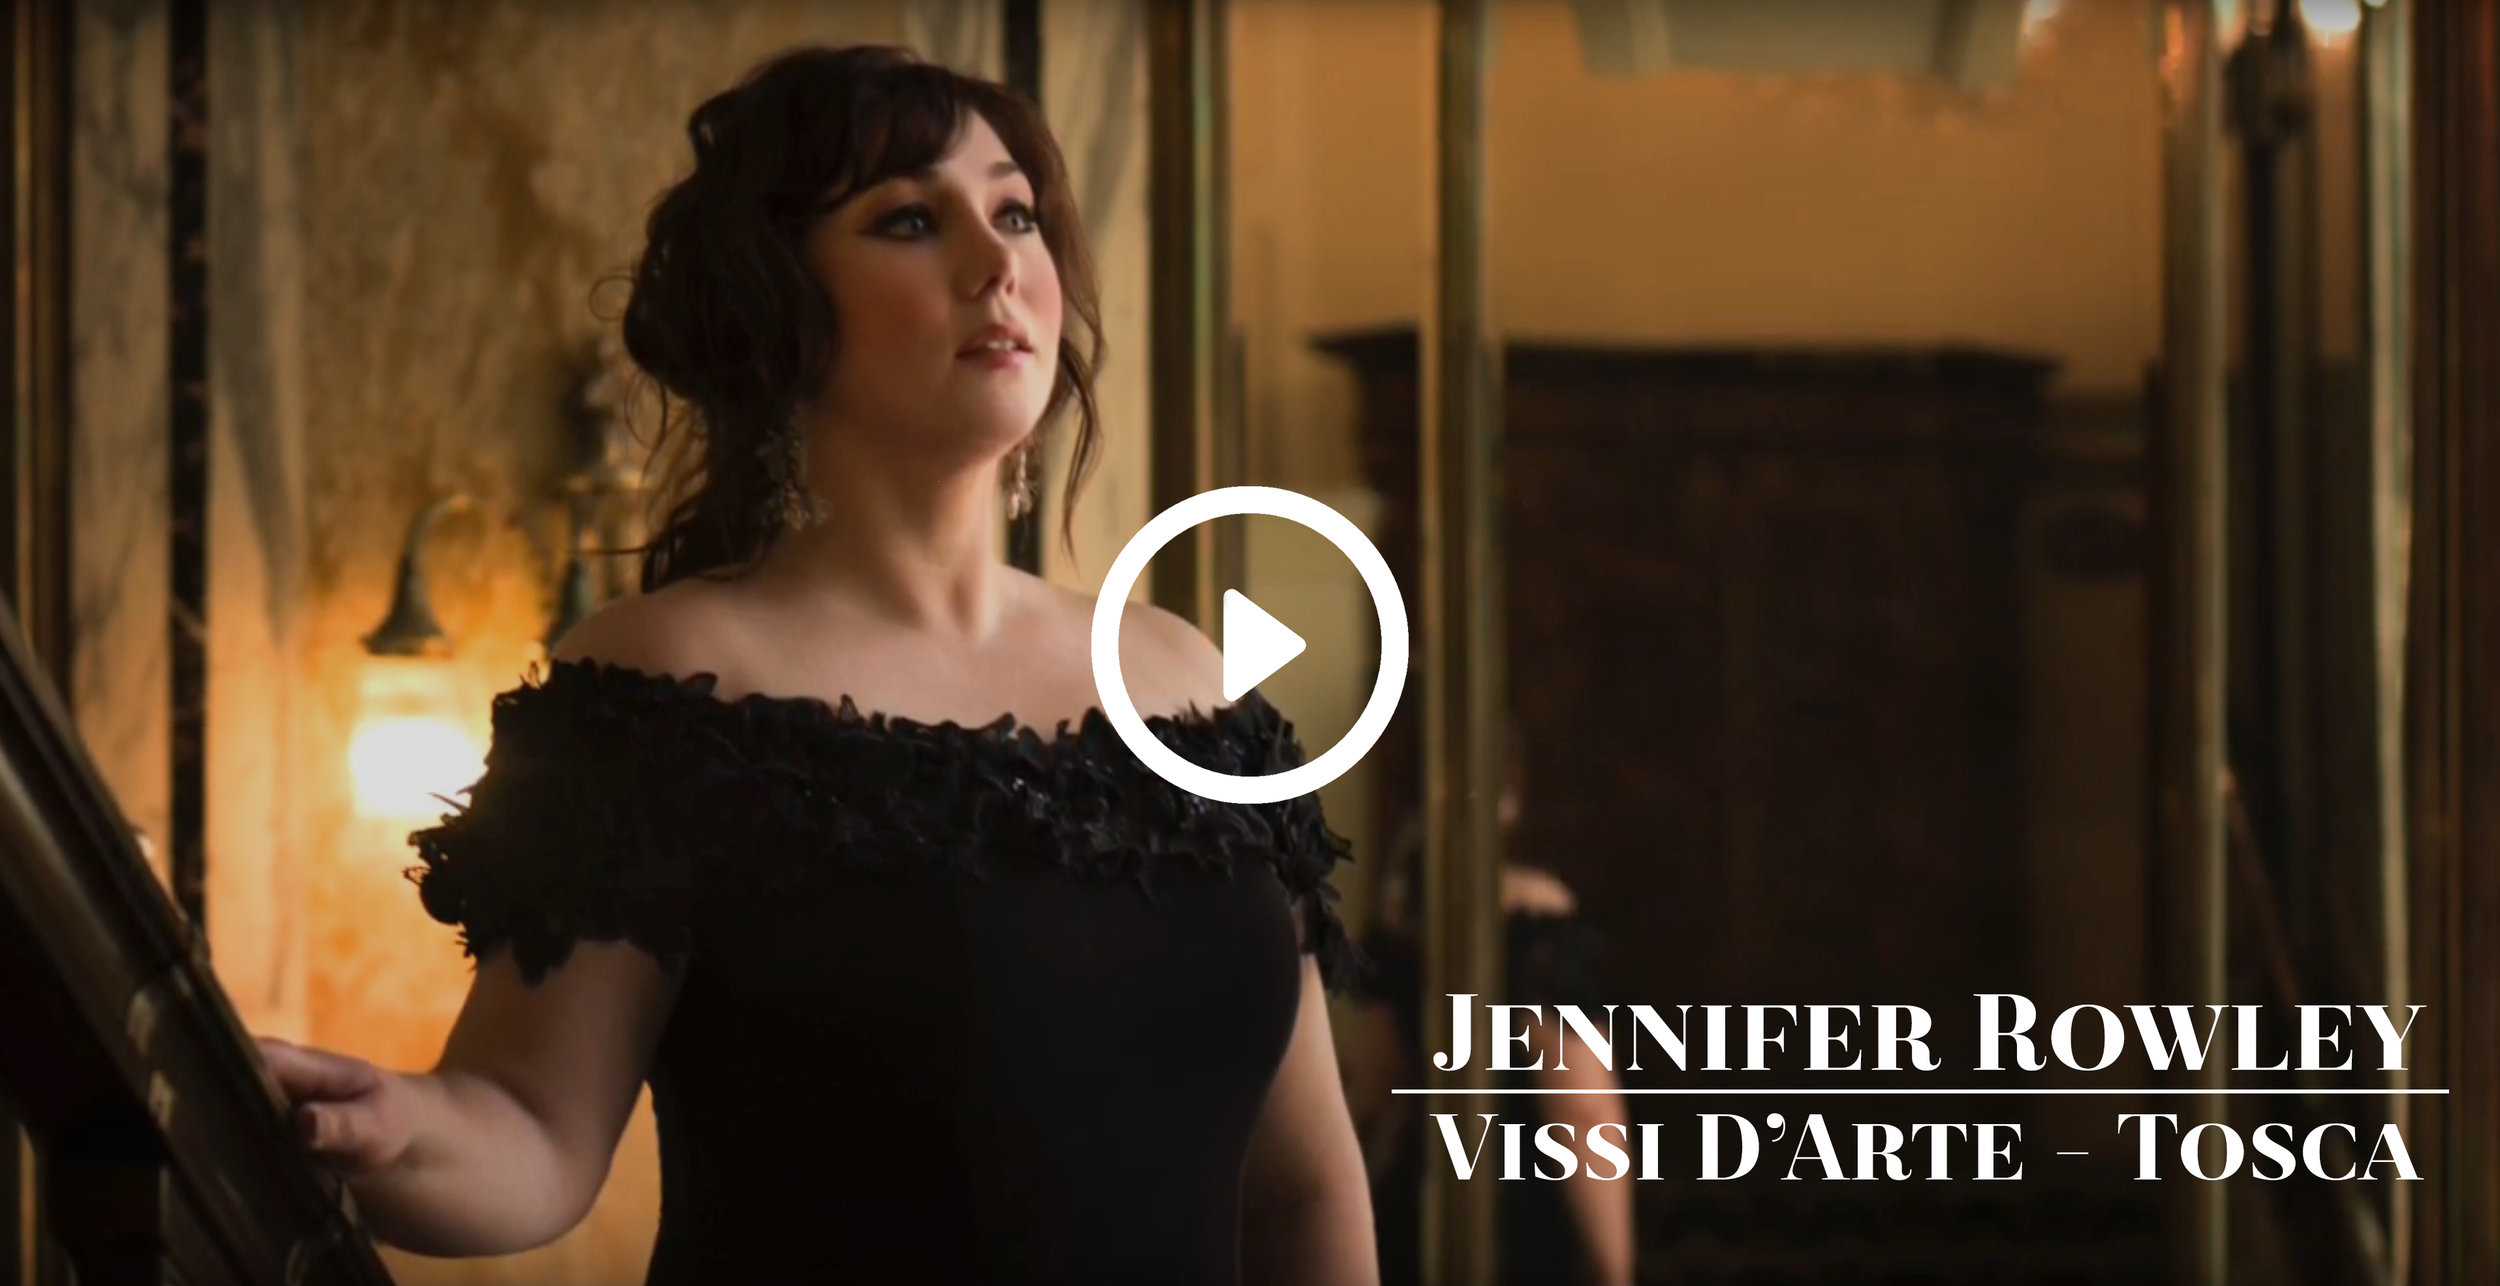 First Glimpse: Jennifer Rowley - Check out this sneak peak of Rowley singing Vissi d'arte from Tosca